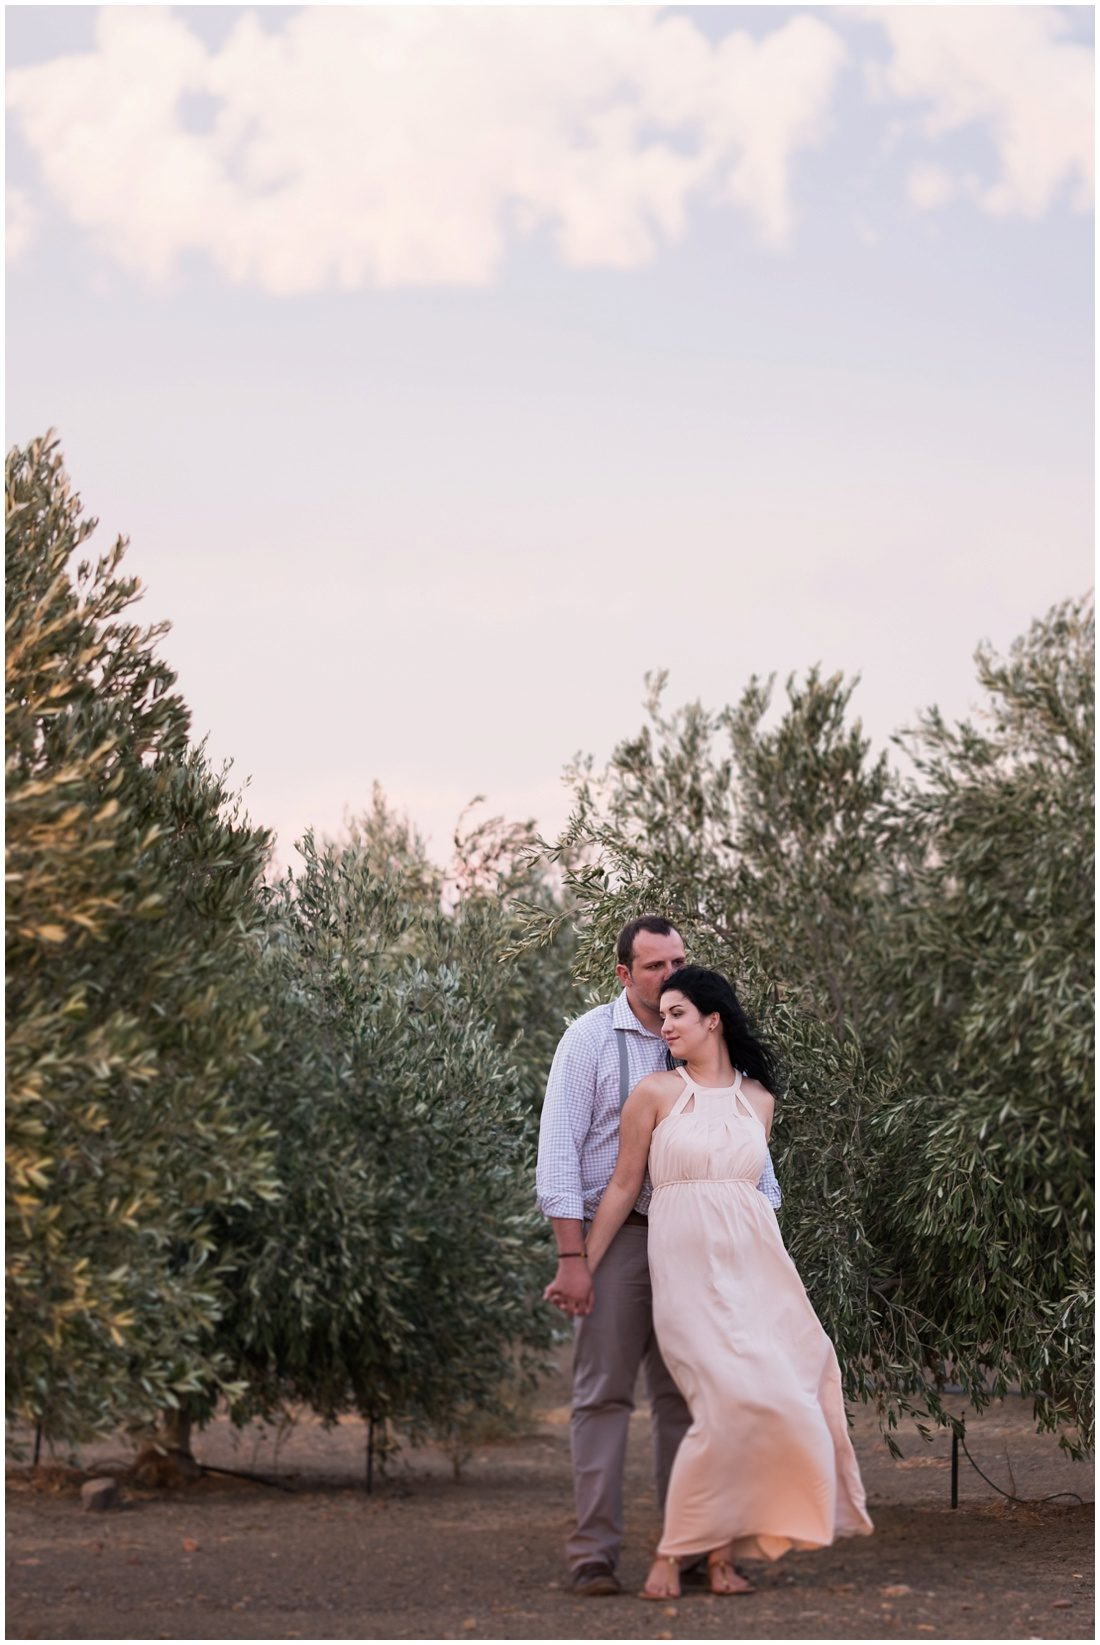 Klein Karoo - Prince Albert - Engagement shoot - Hanno and Ivette -13